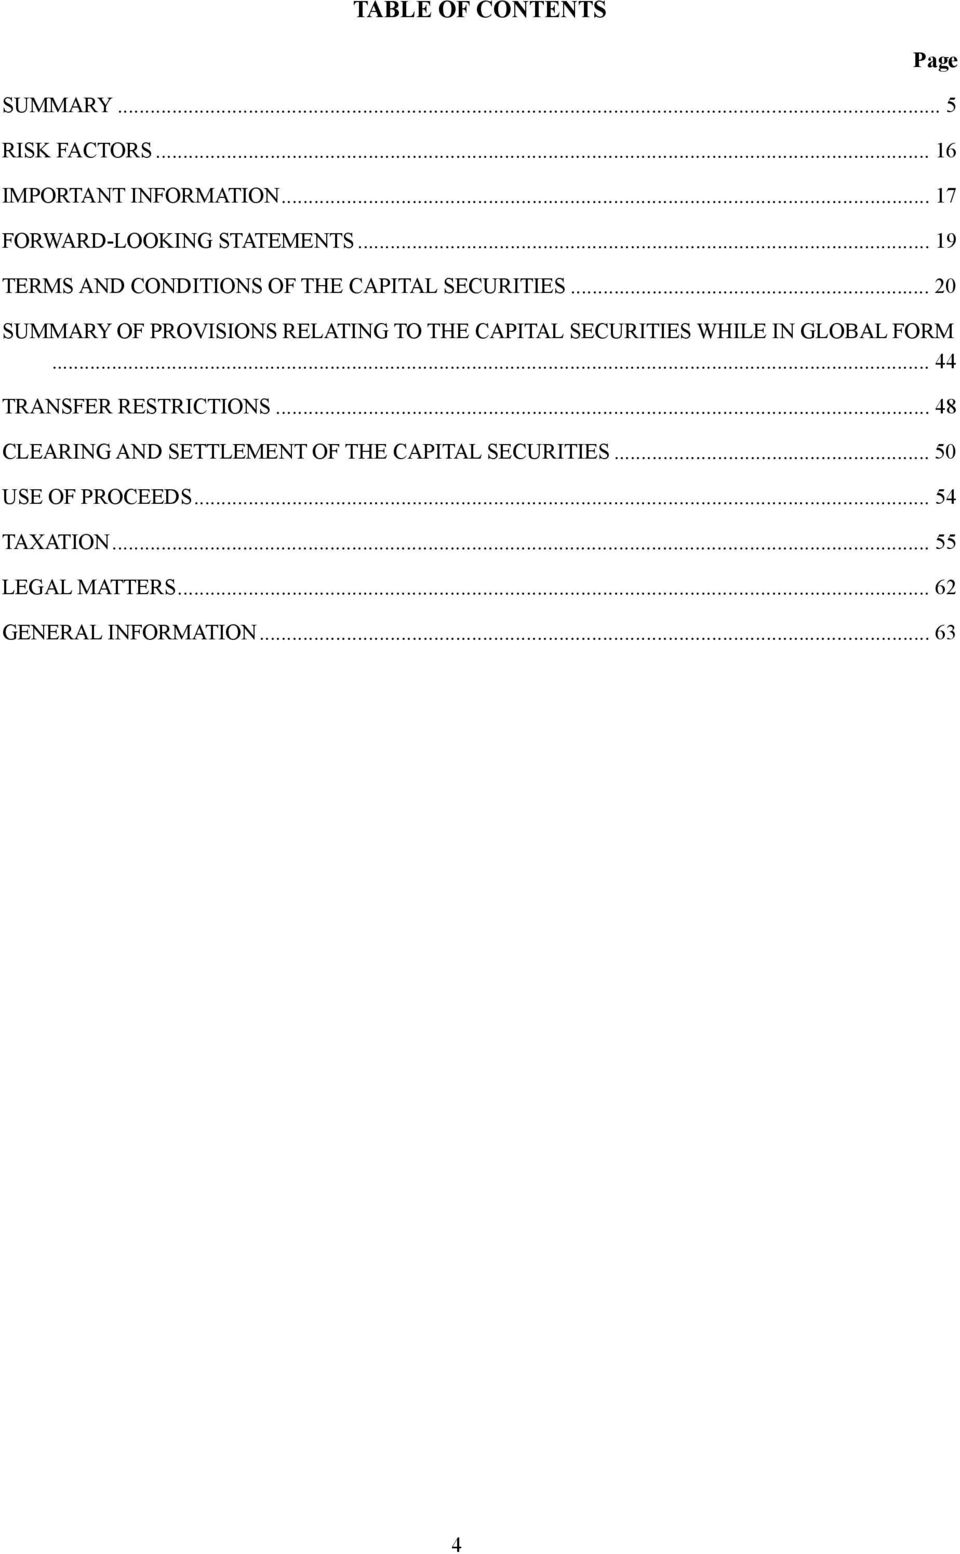 .. 20 SUMMARY OF PROVISIONS RELATING TO THE CAPITAL SECURITIES WHILE IN GLOBAL FORM.